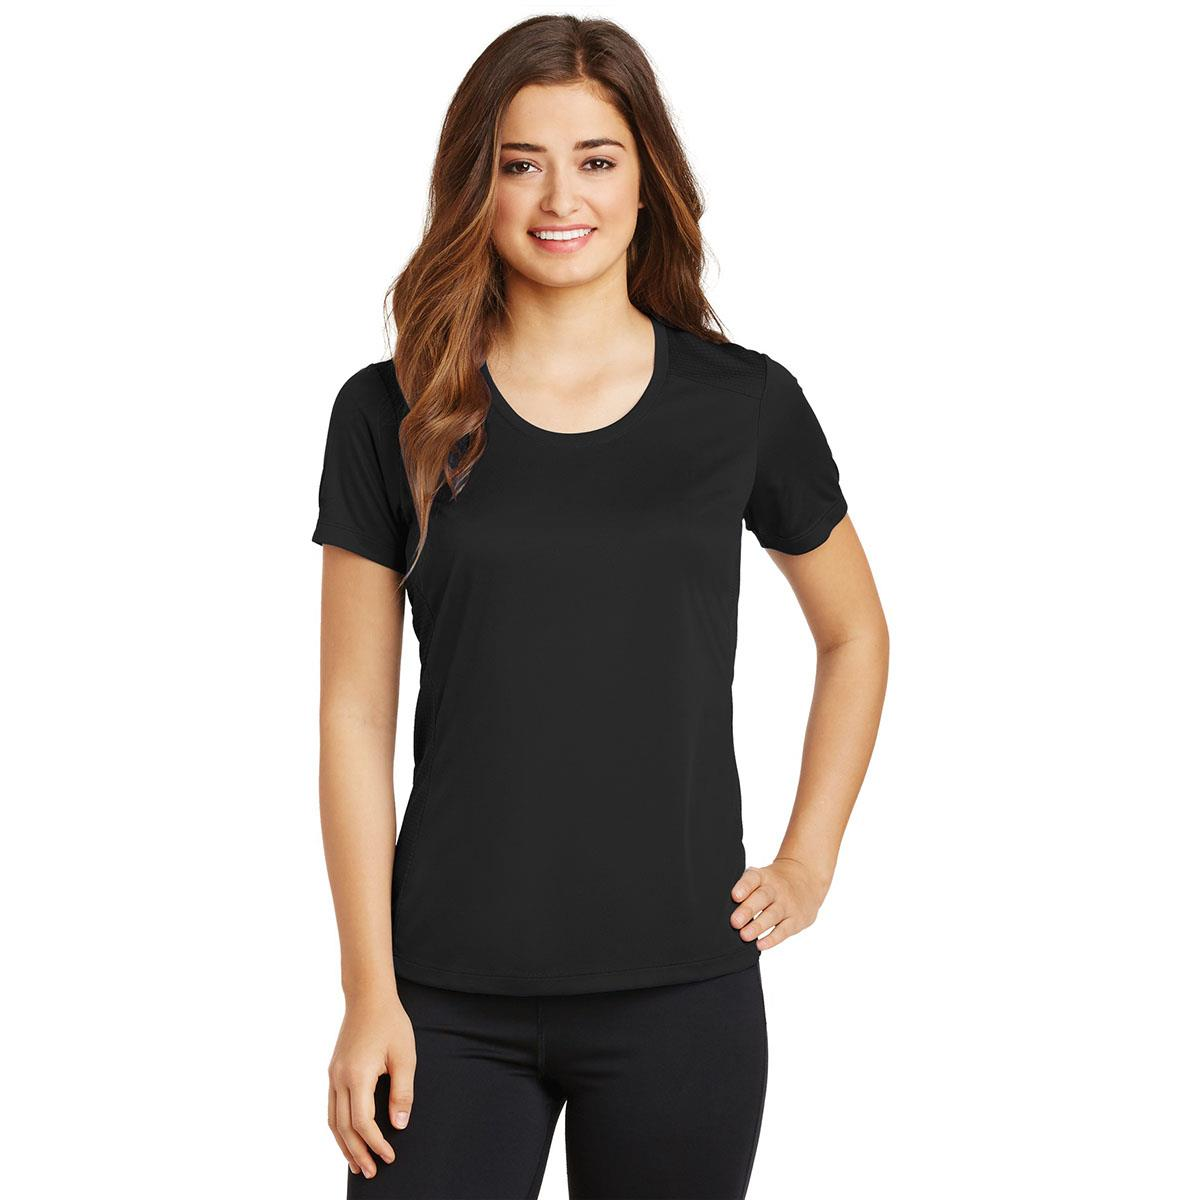 Ladies Elevate Scoop Neck Moisture Wicking Tee With Protective Underarm Shields Style #LST380